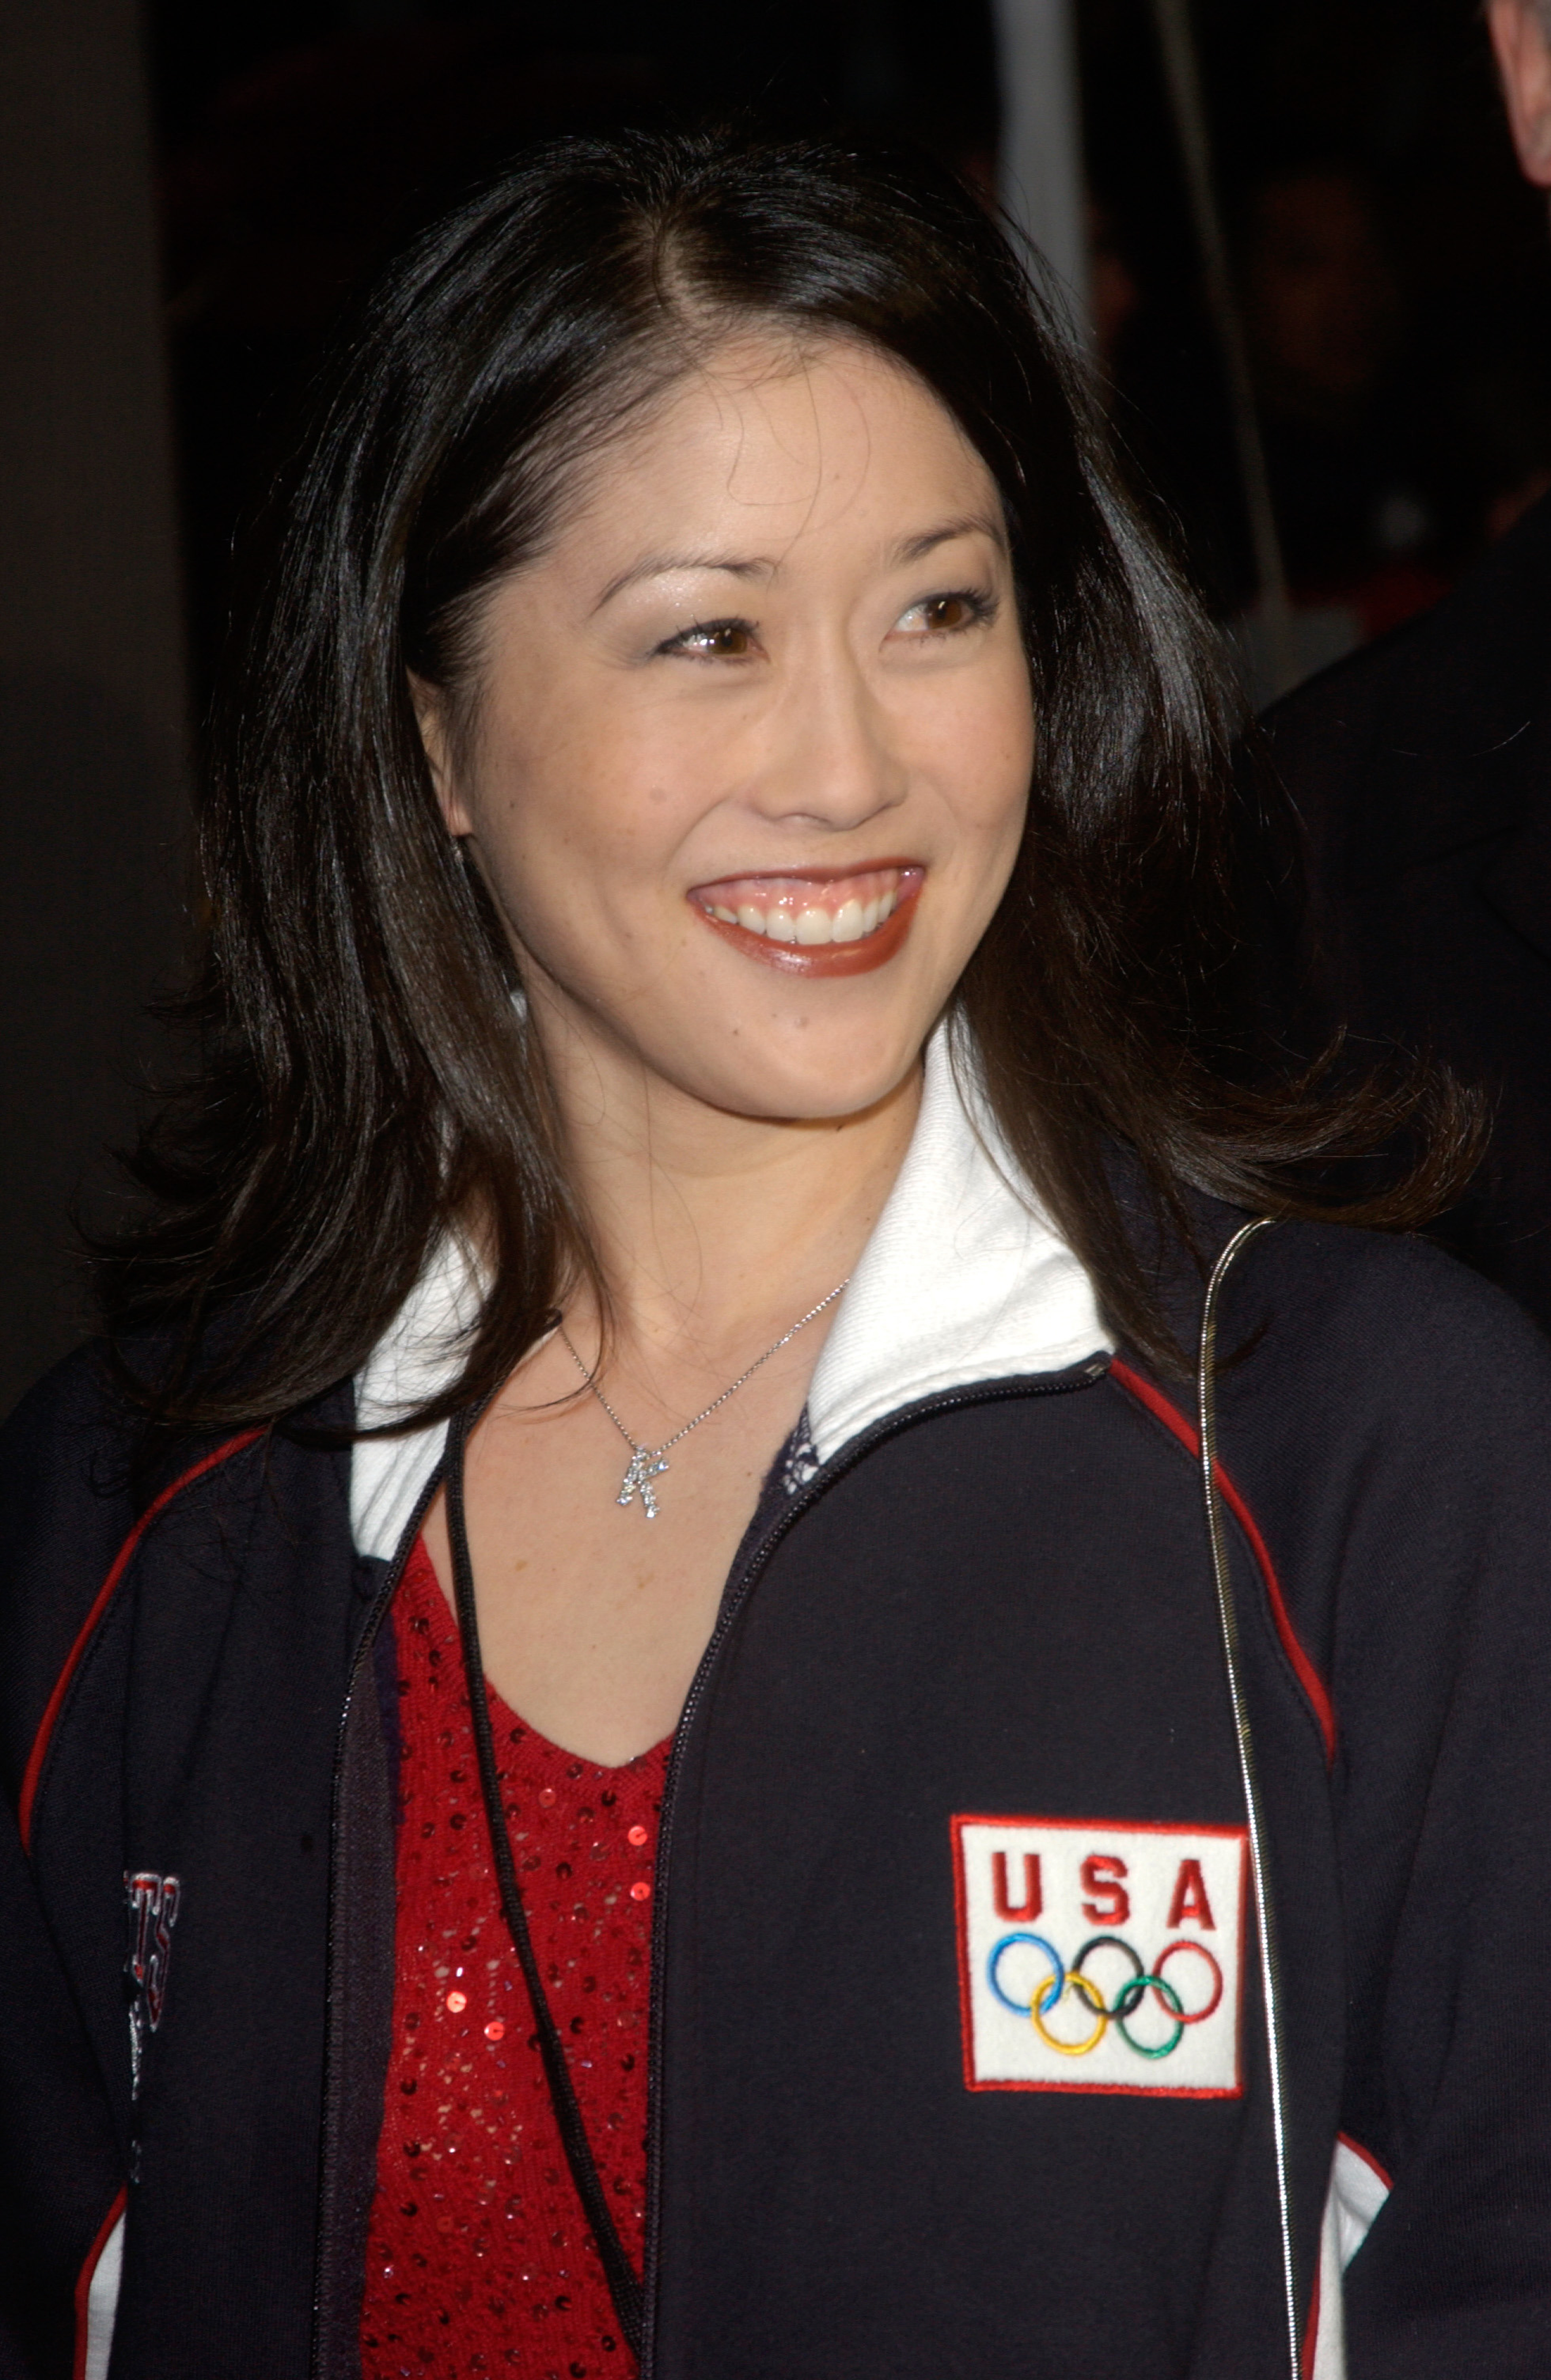 Olympic medalist and former professional figure skater Kristi Yamaguchi.